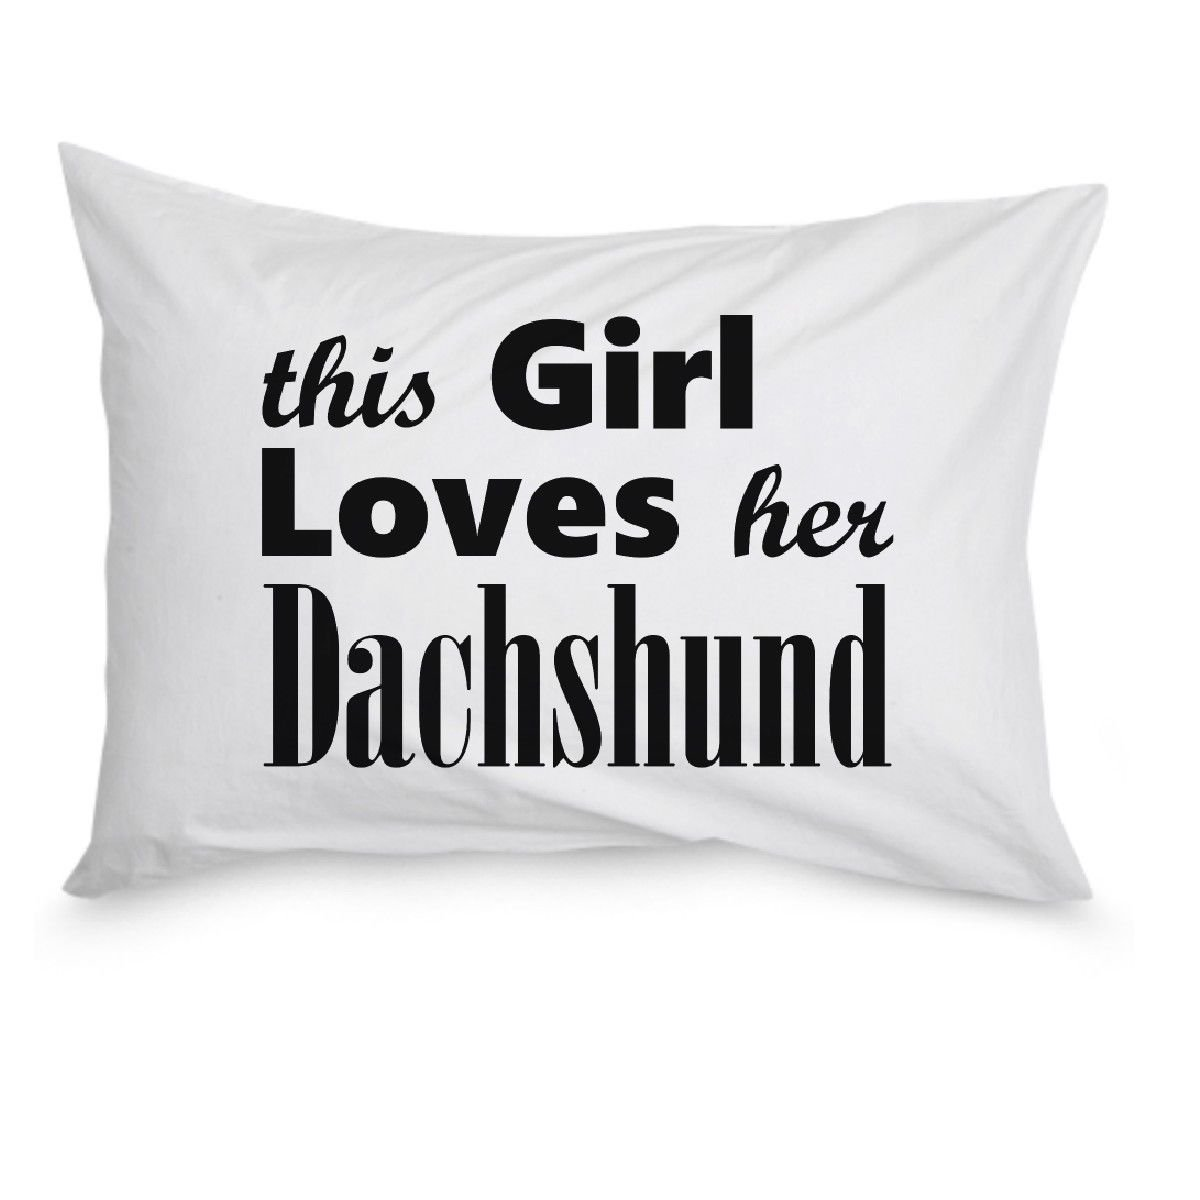 Dachshund - Pillow Case - Dog Gifts For Women - Gifts for Dog Lovers